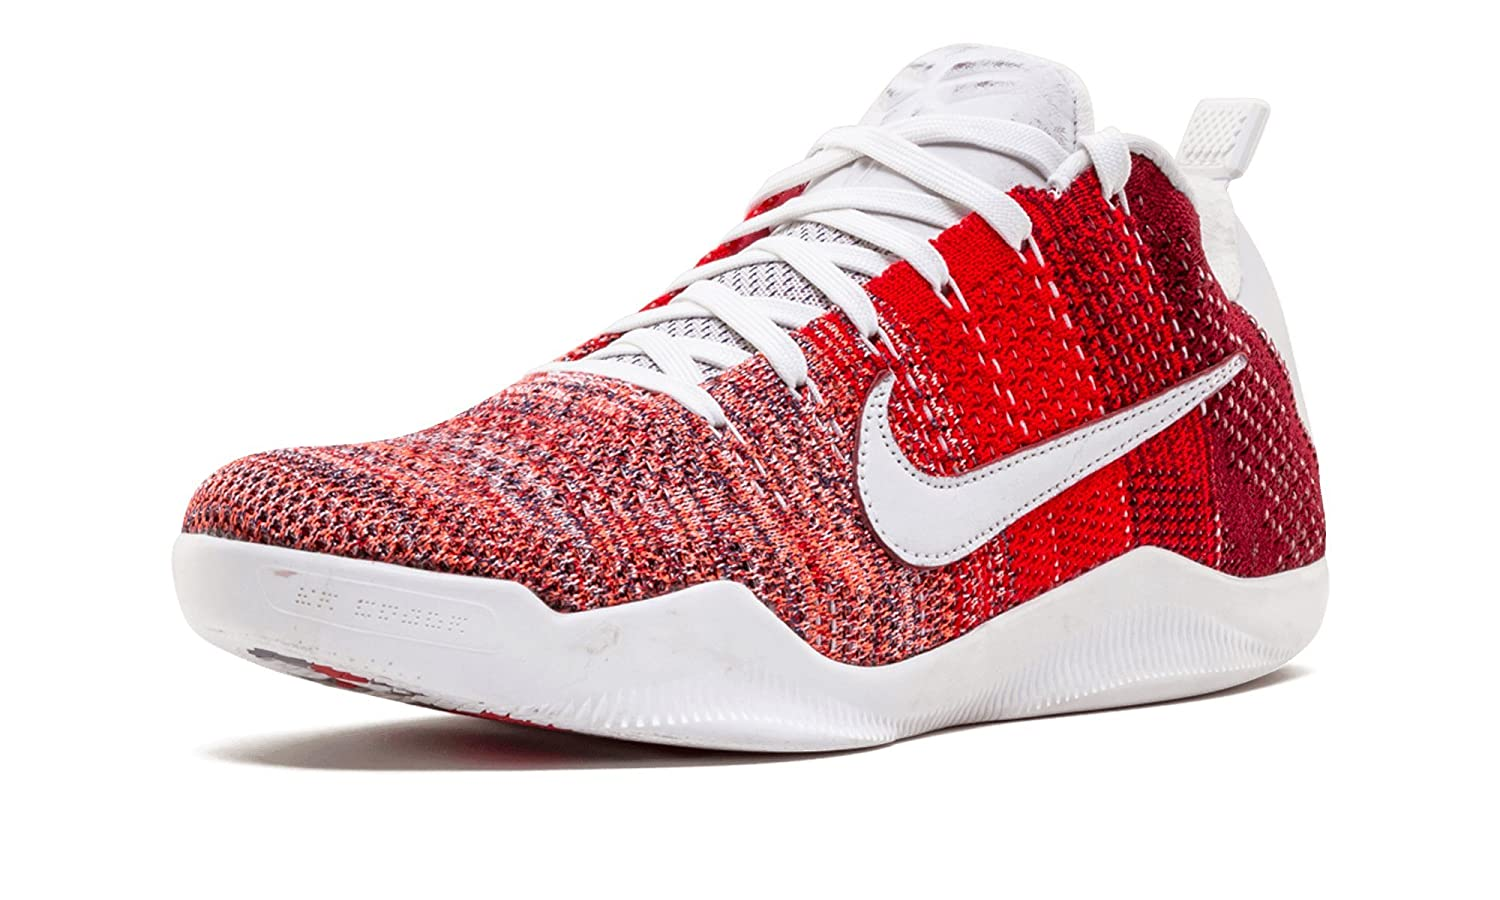 best authentic 8fc09 72463 ... coupon code for amazon nike mens kobe xi elite low 4kb university red  summit white team